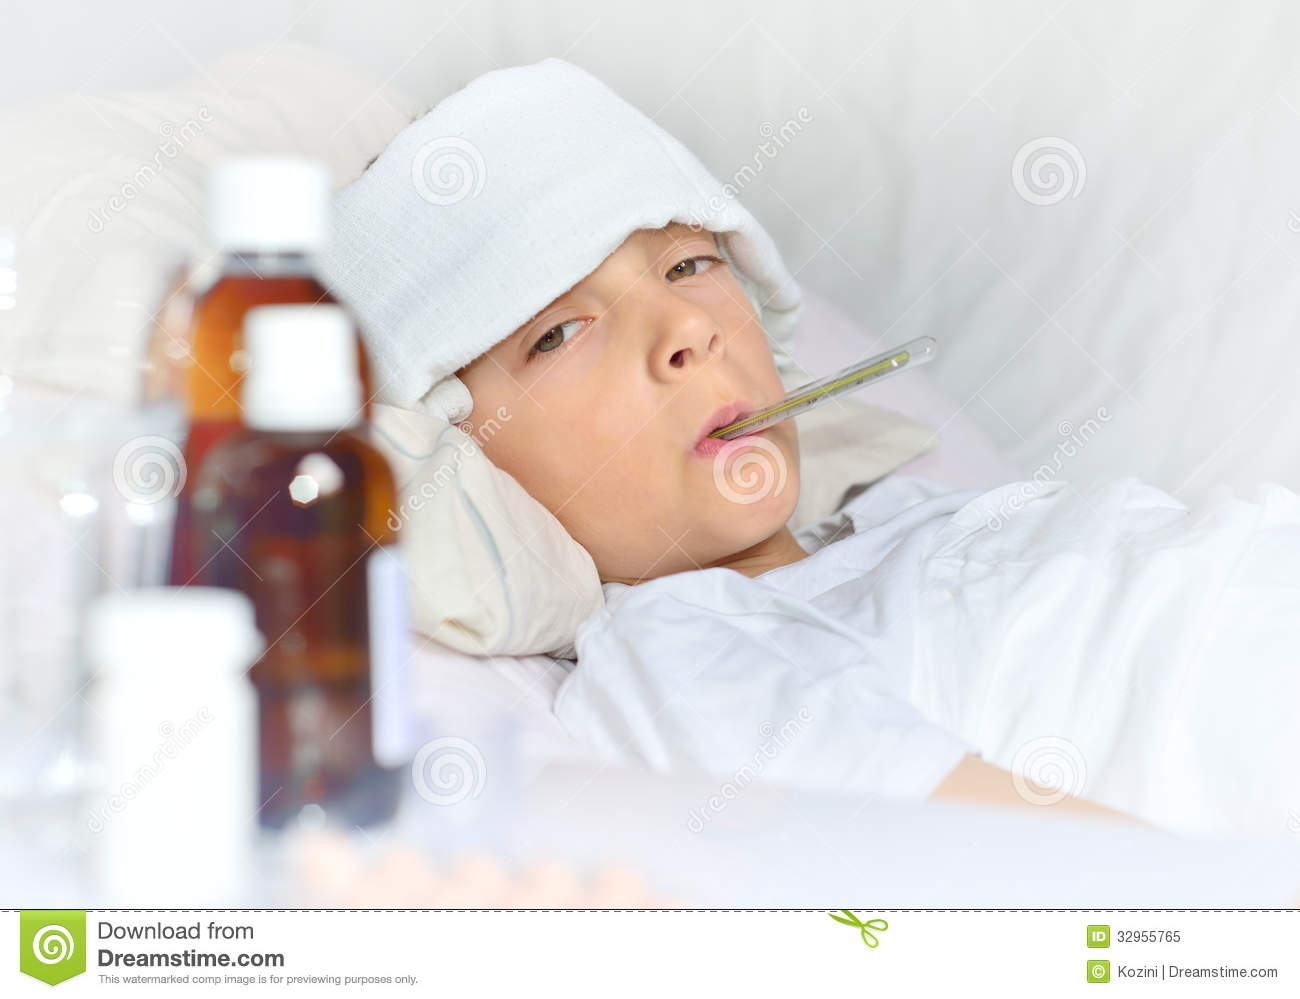 Sick Boy Lying In Bed Royalty Free Stock Photo   Image  32955765